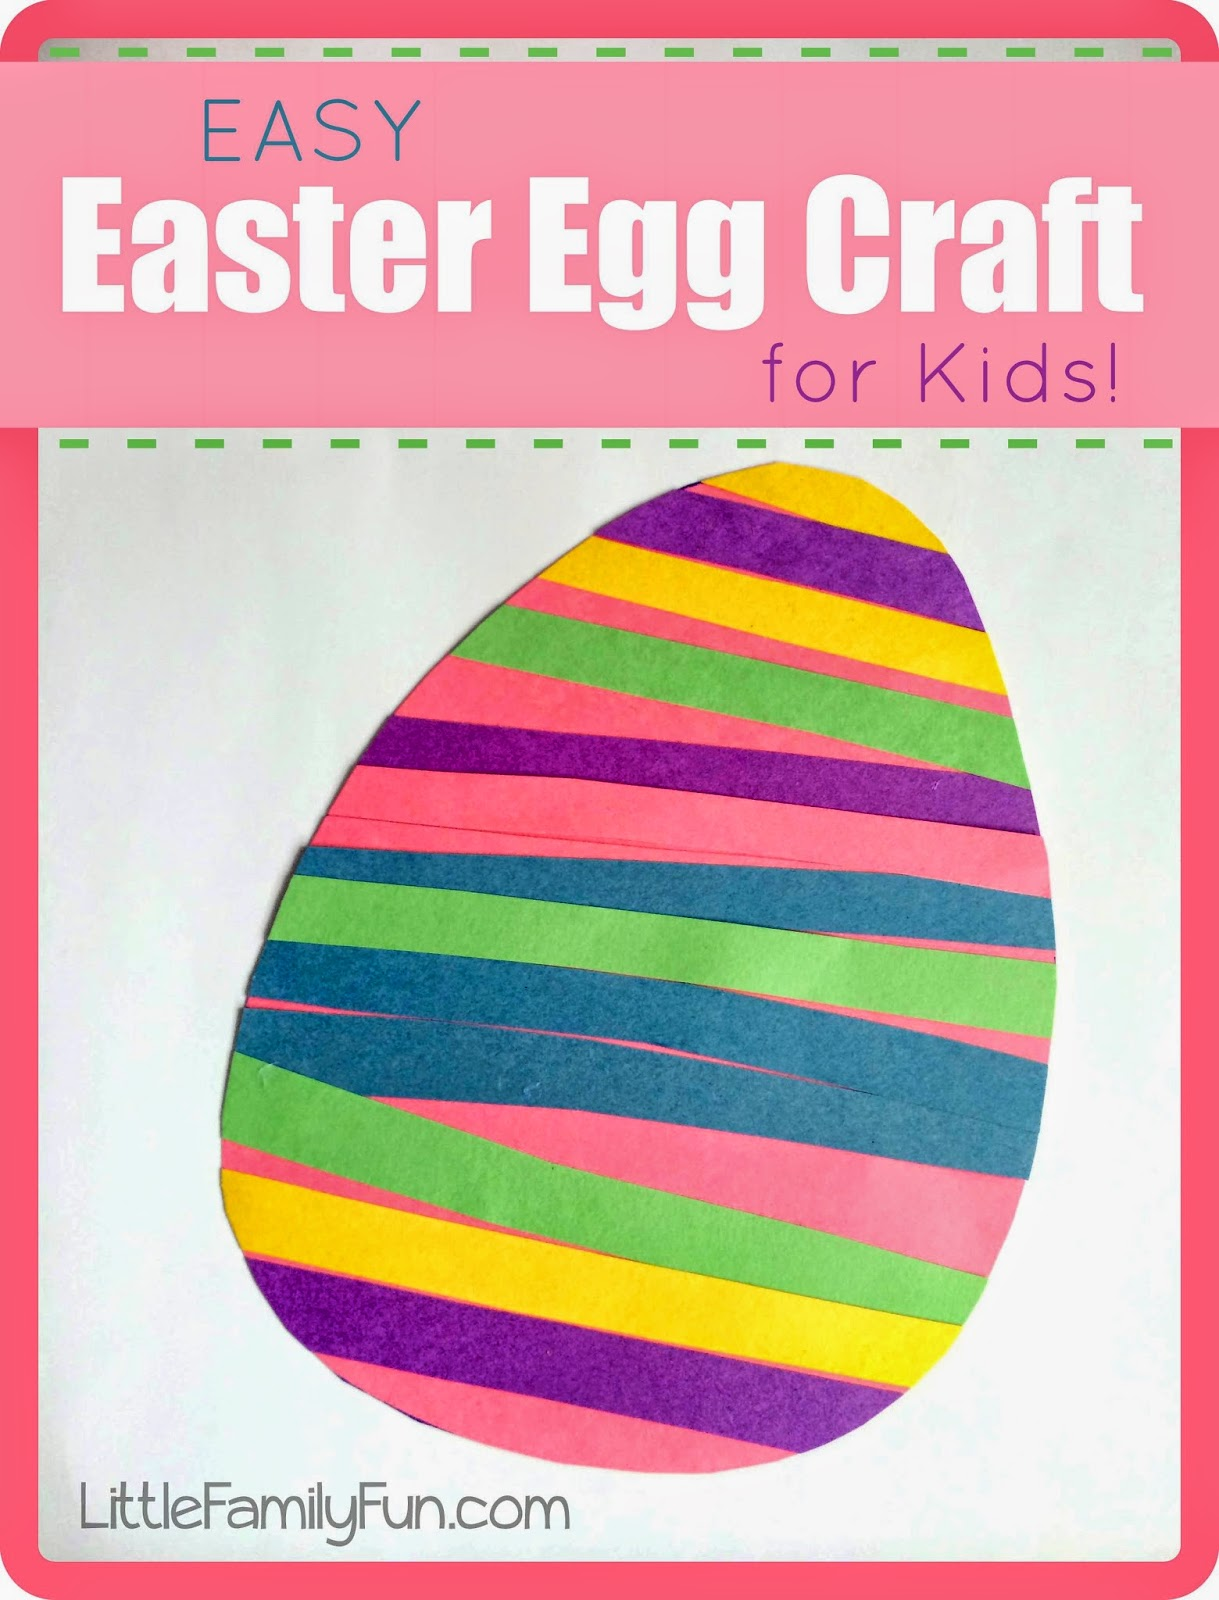 http://www.littlefamilyfun.com/2014/04/easy-easter-egg-craft-for-kids.html